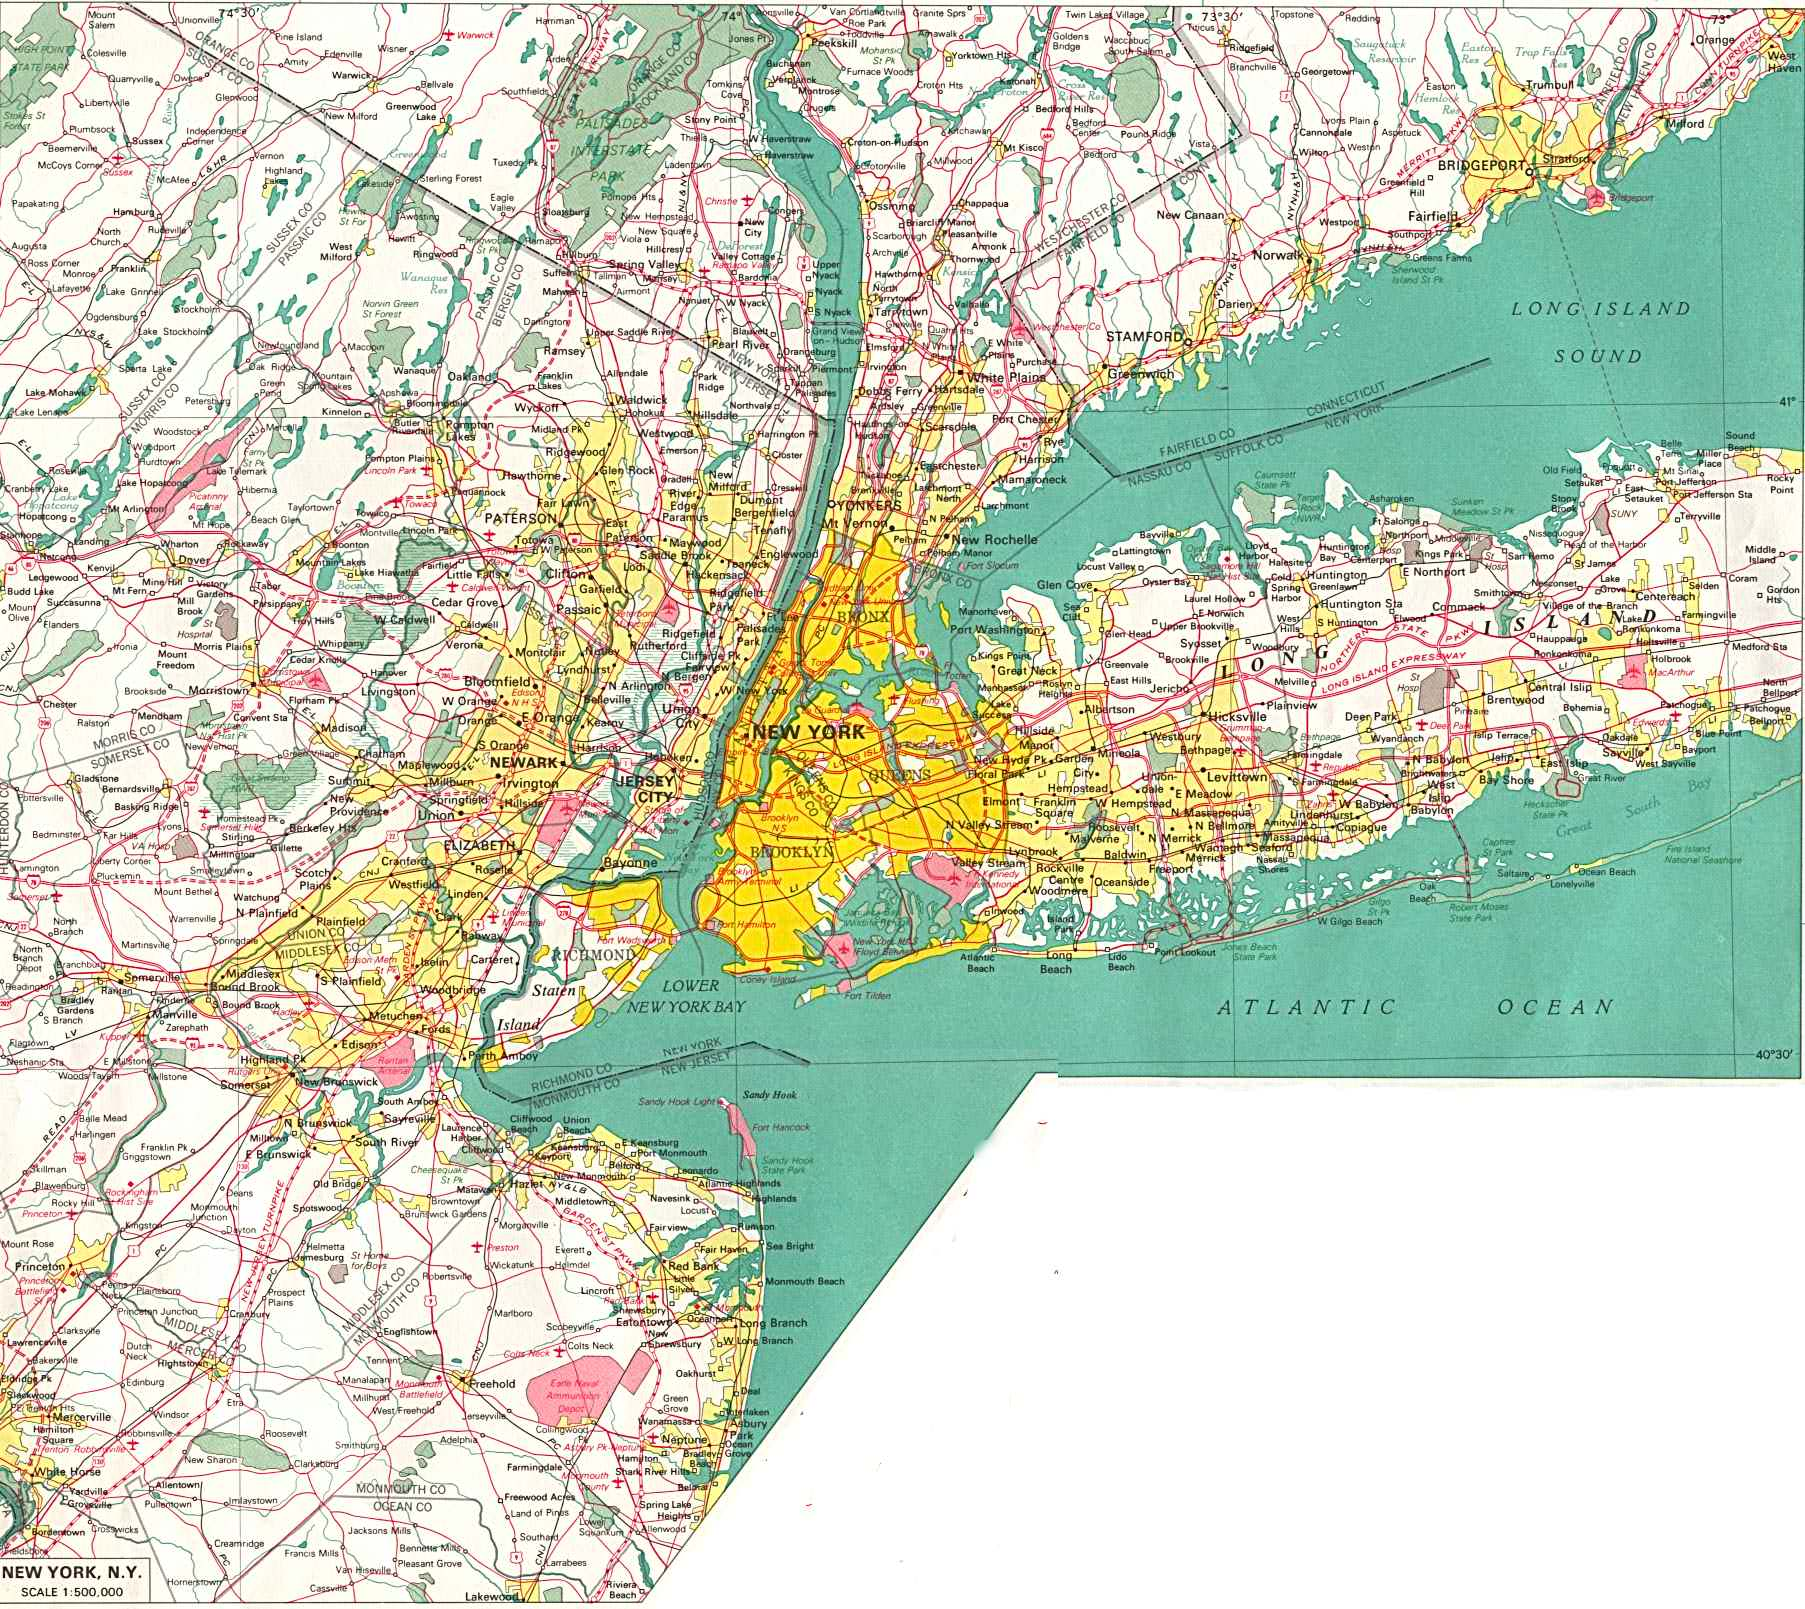 A large detailed street map of New York City NYC